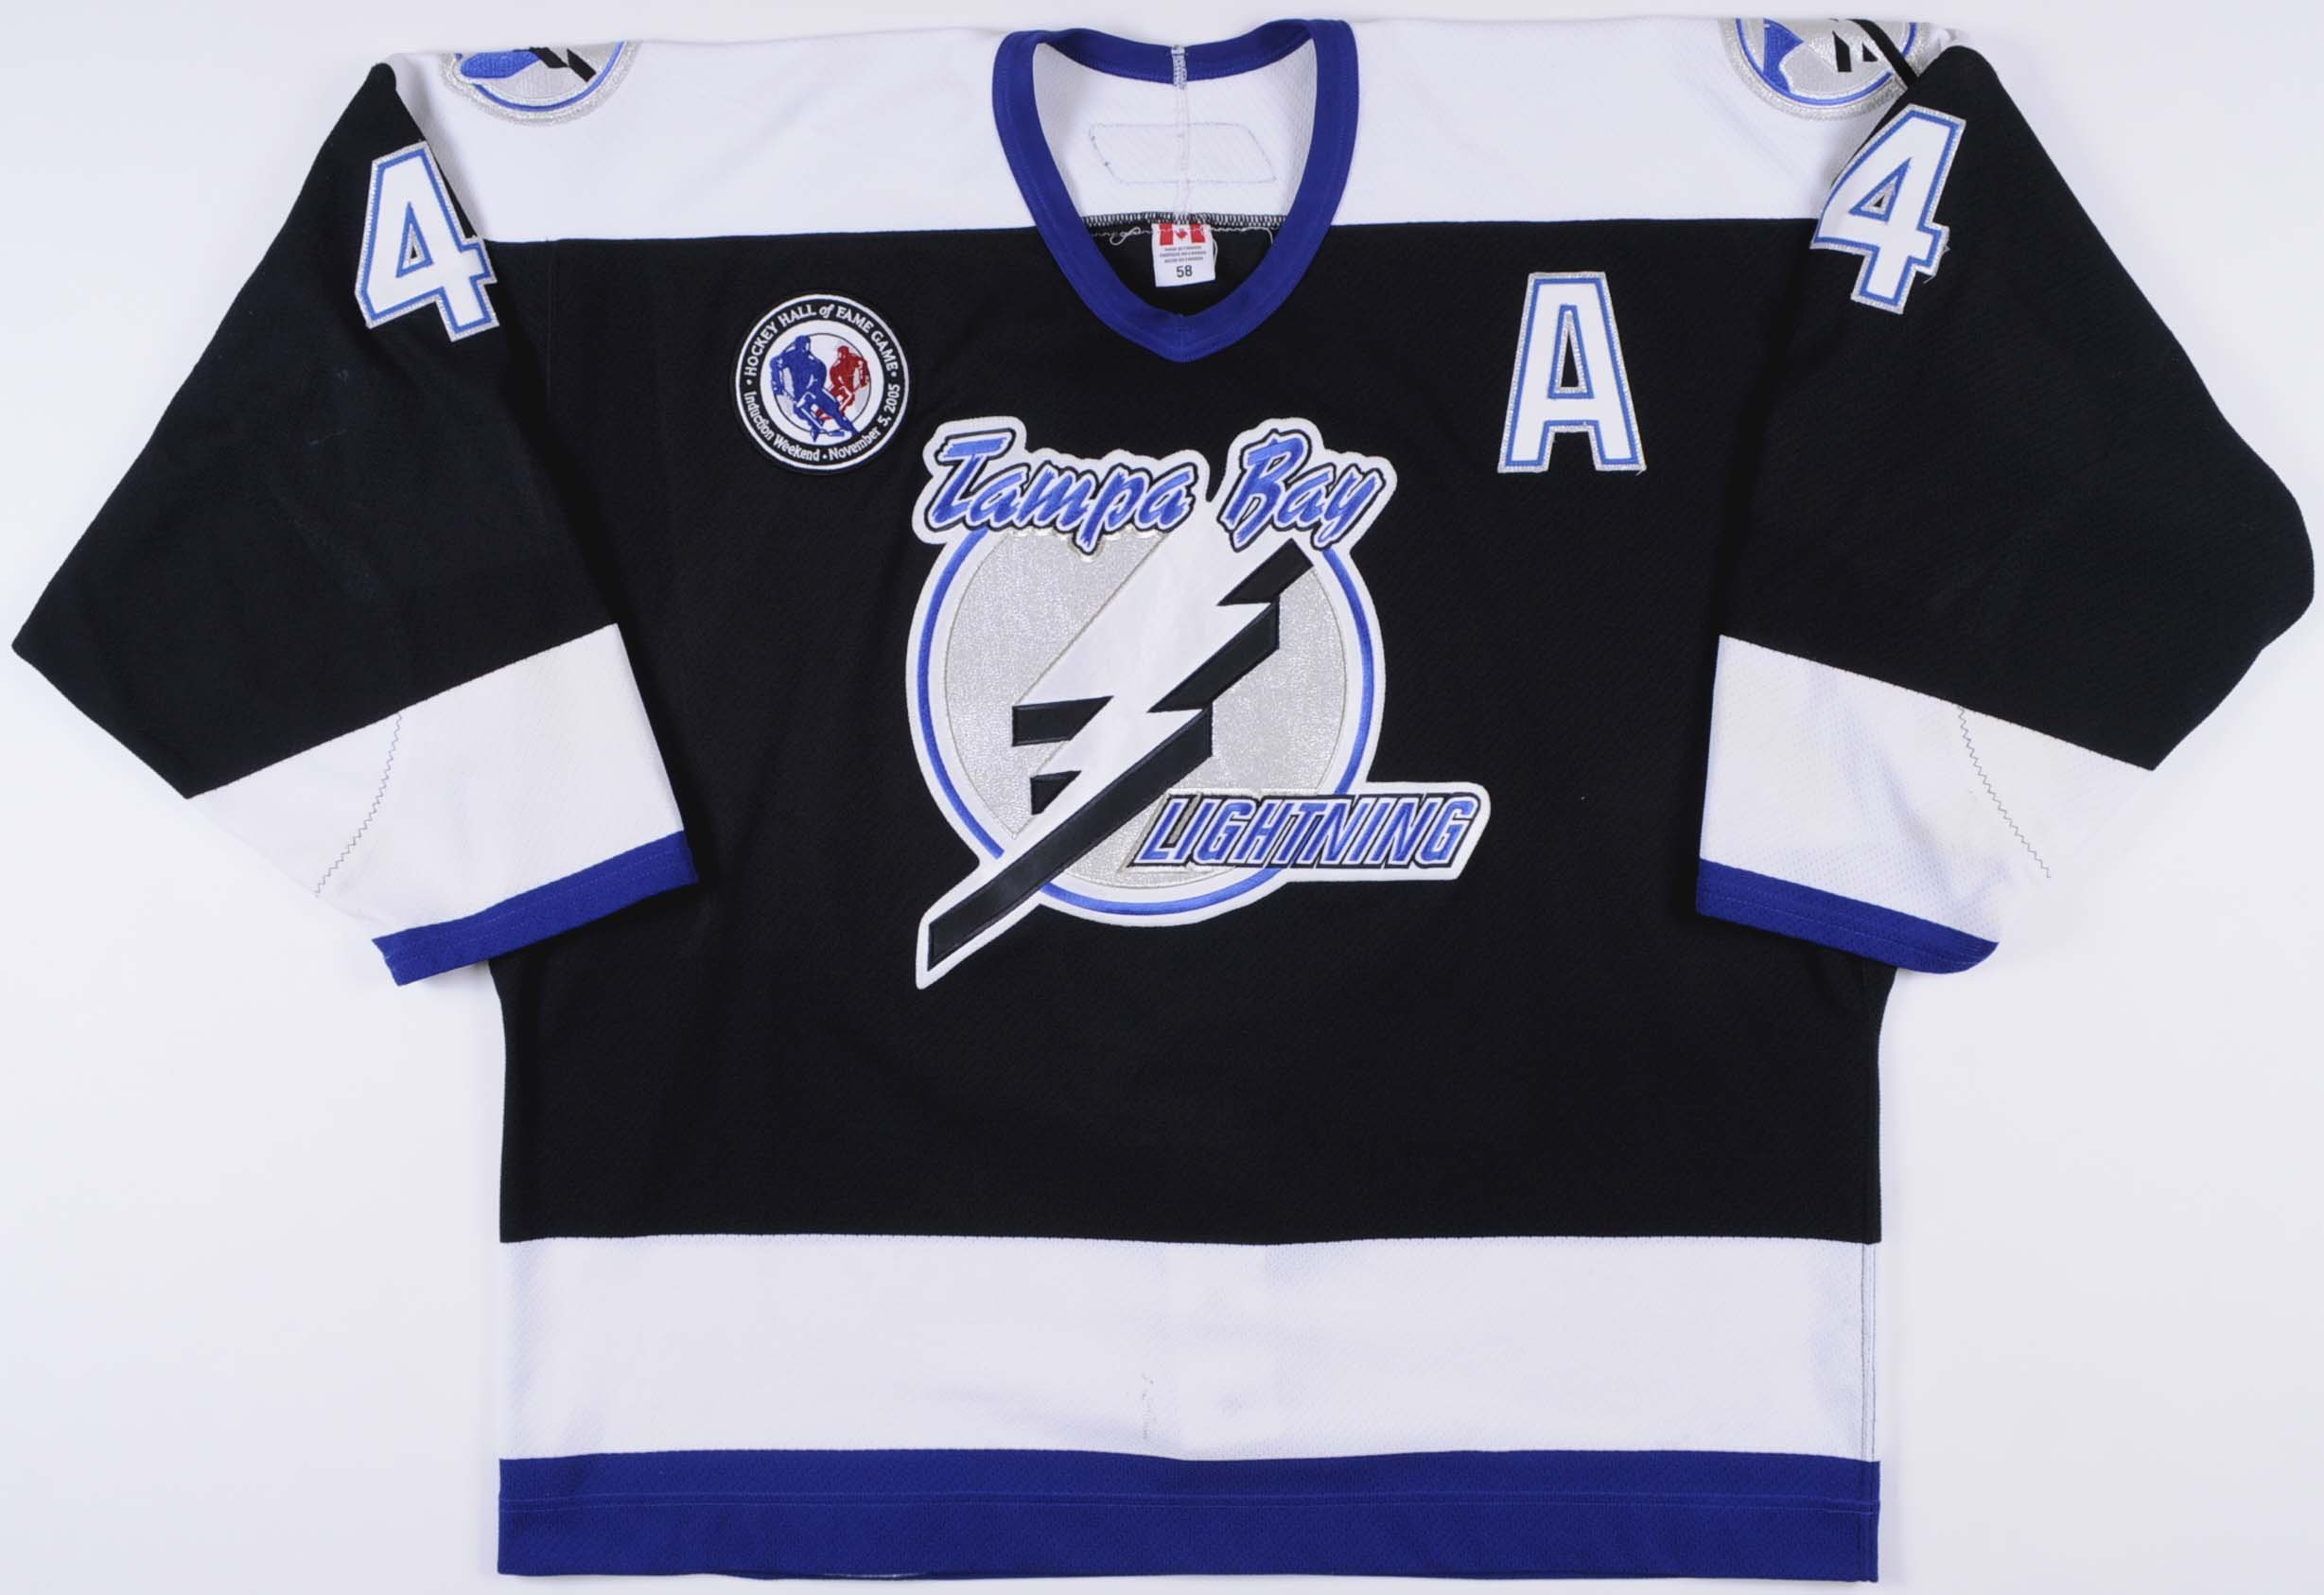 TAMPA BAY LIGHTNING nhl hockey 55 wallpaper 2457x1686 349240 2457x1686